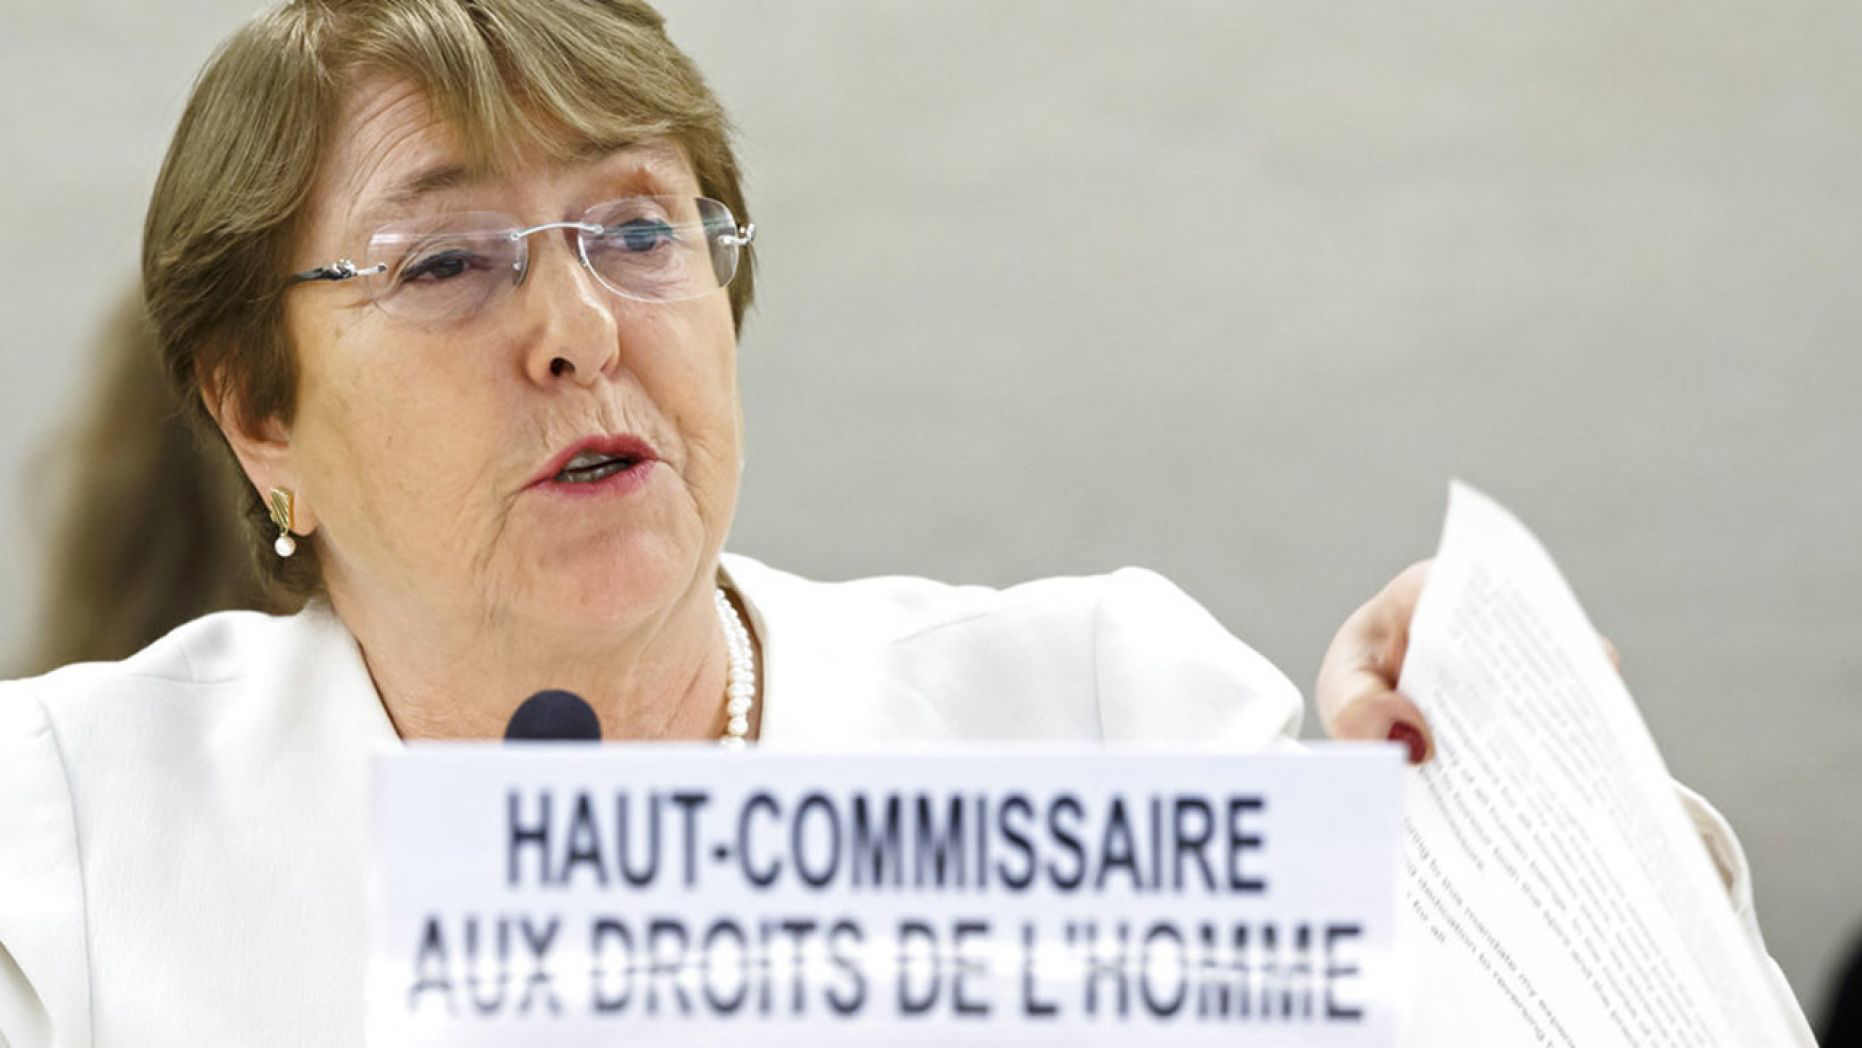 UN High Commissioner for Human Rights Michelle Bachelet